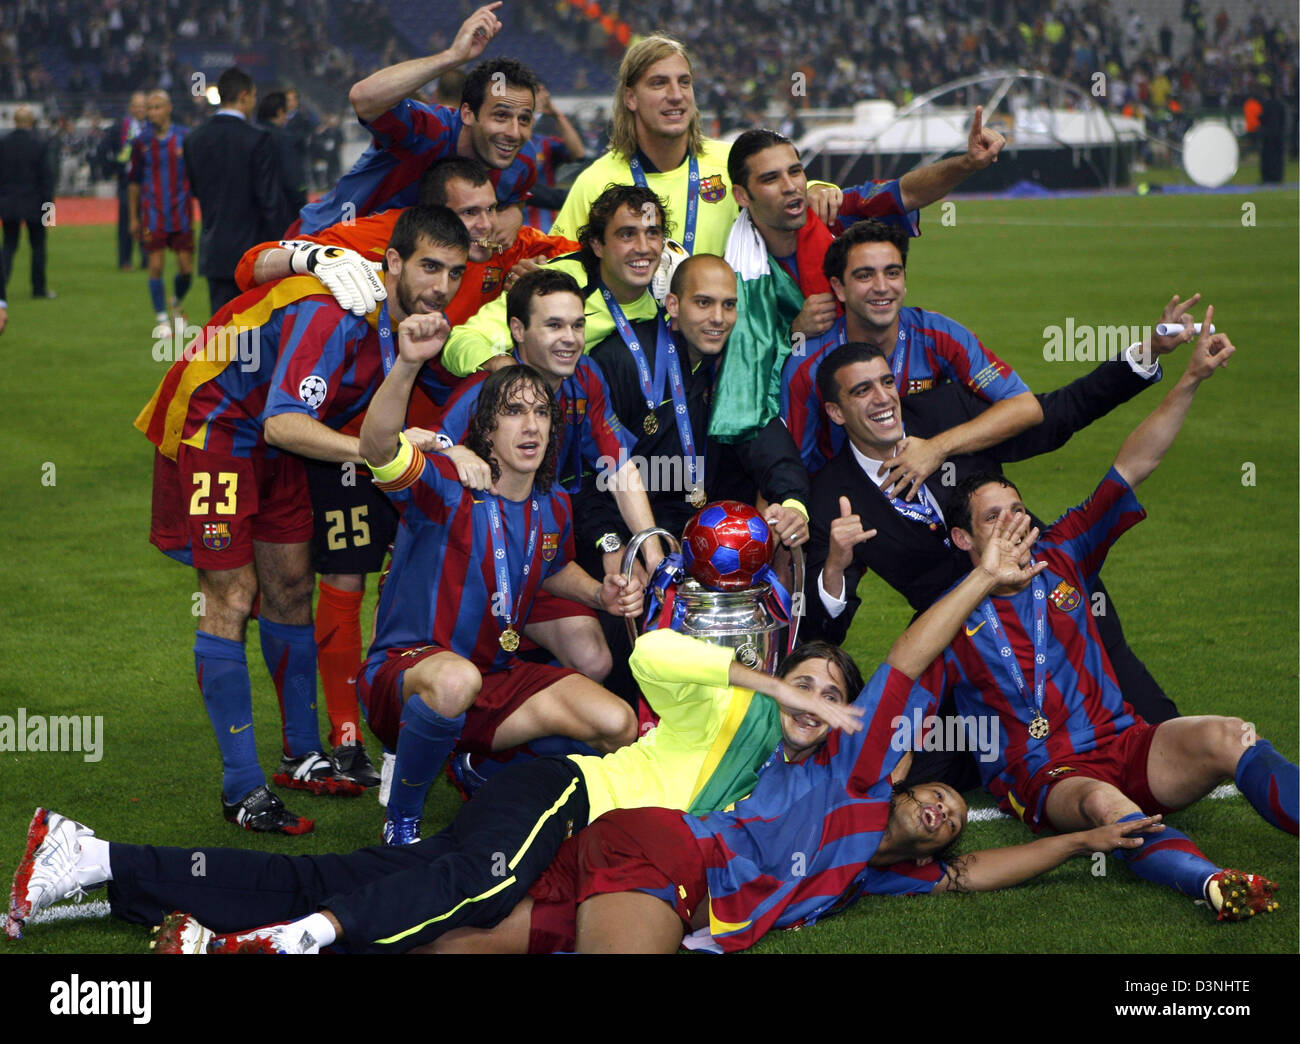 the players of fc barcelona celebrate their triumph over arsenal stock photo alamy https www alamy com stock photo the players of fc barcelona celebrate their triumph over arsenal london 53950078 html